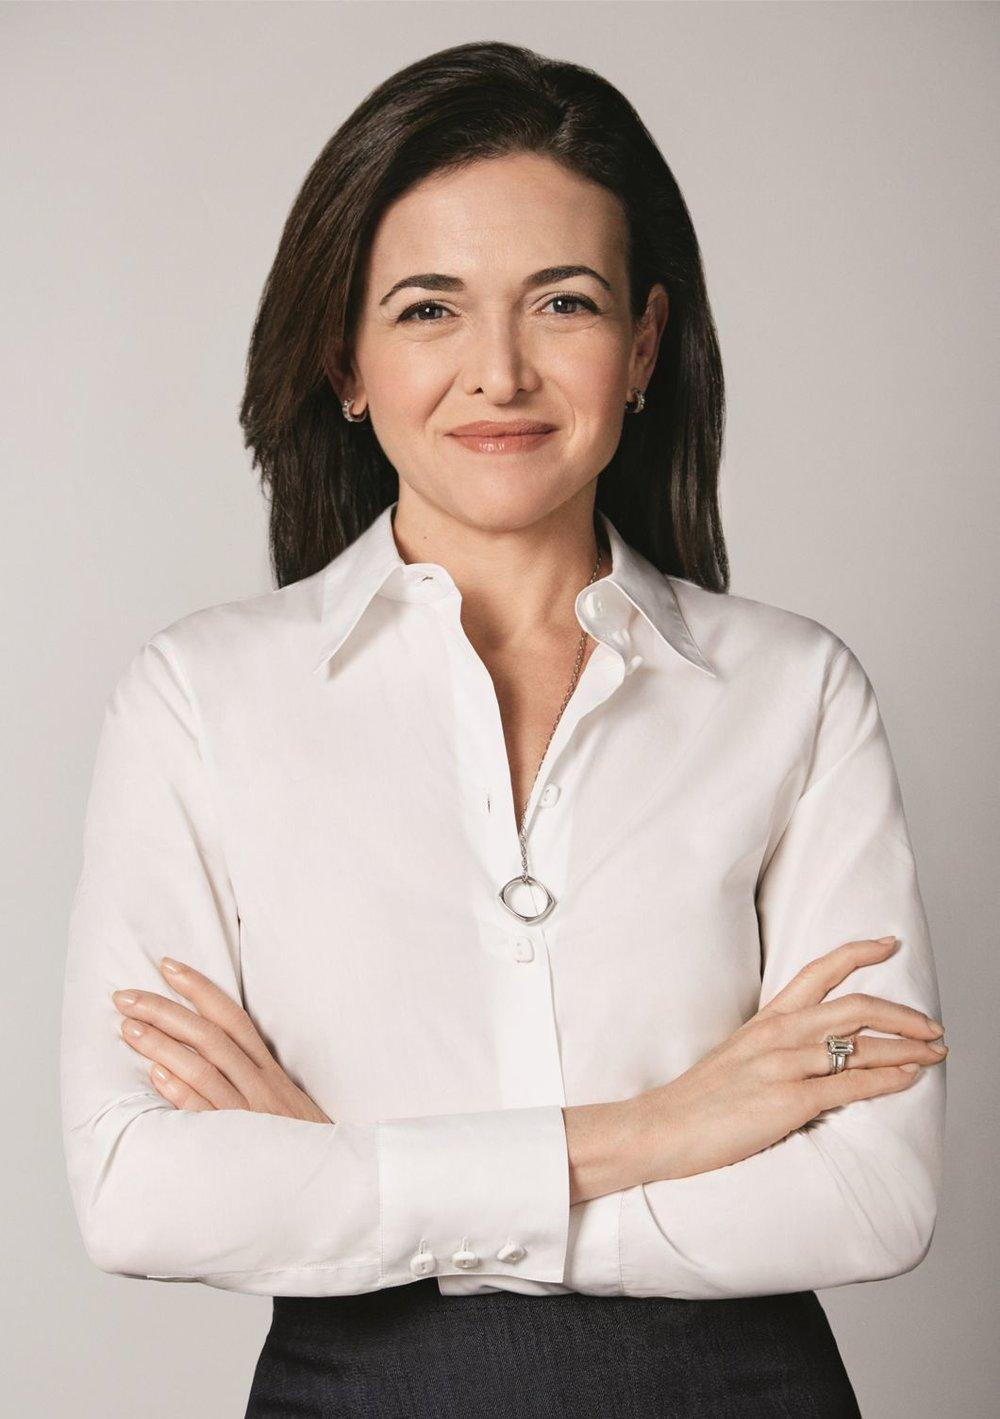 Sheryl Sandberg - COO of Facebook, founder of leanin.org